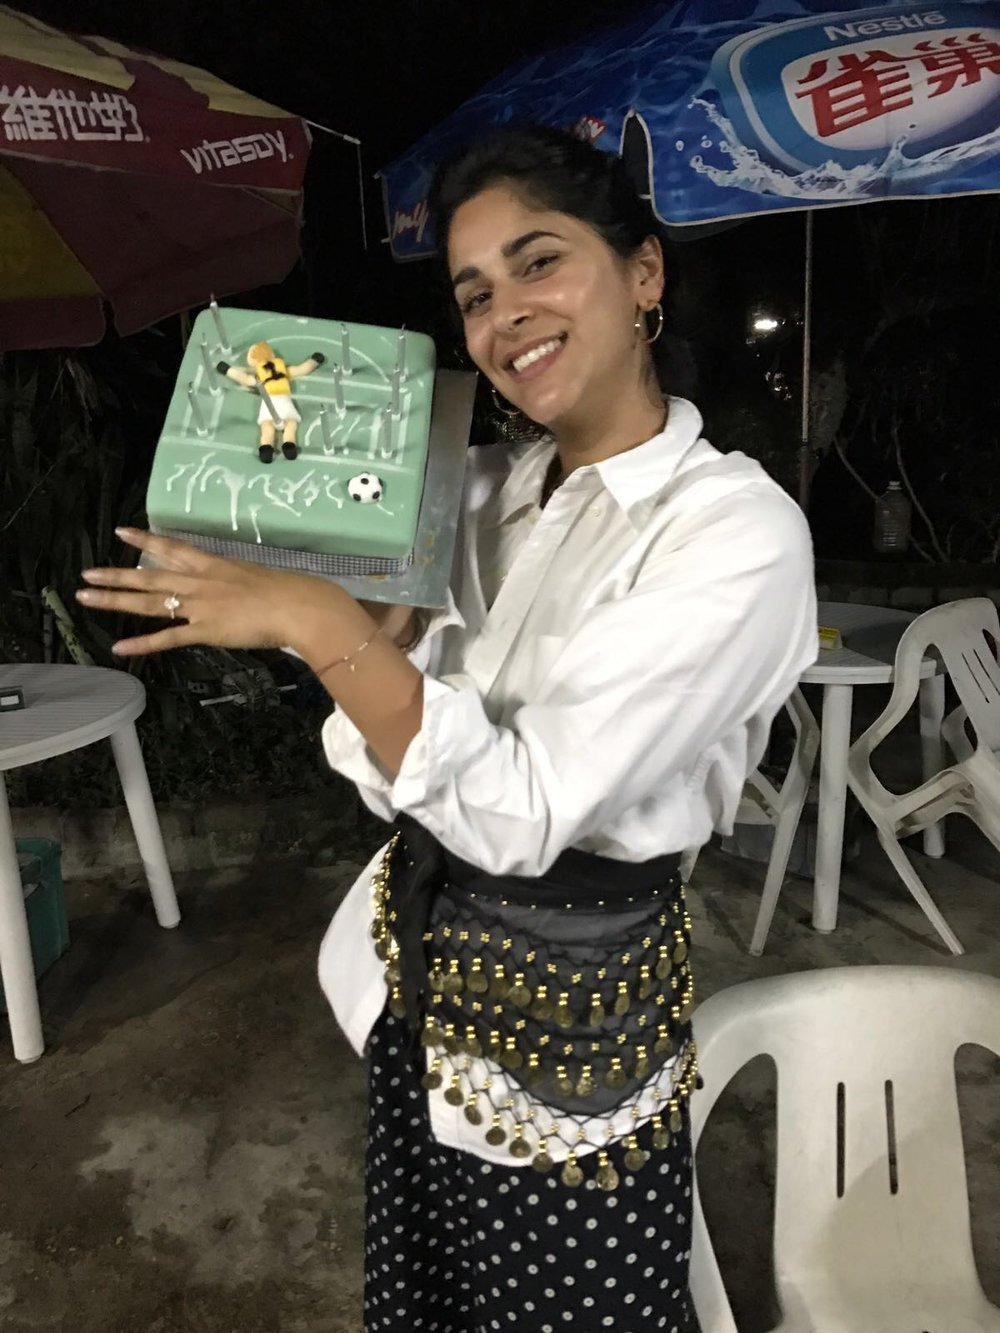 Here i am with my cake, my new ring and dripping icing which said 'anahita'